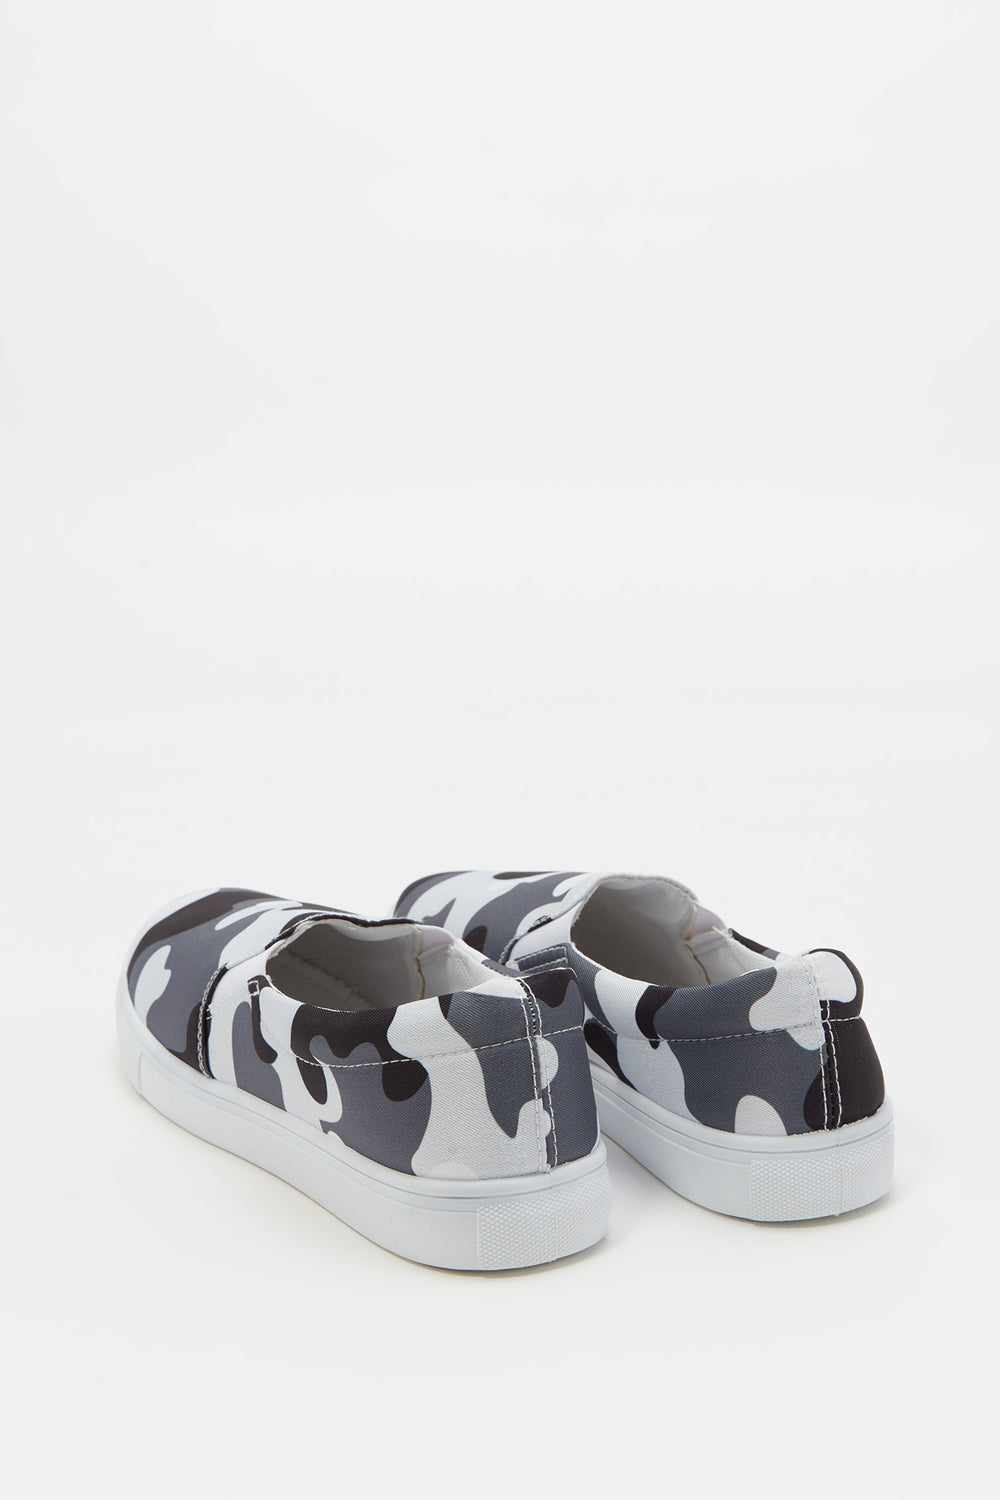 Camo Slip-On Sneaker Camouflage